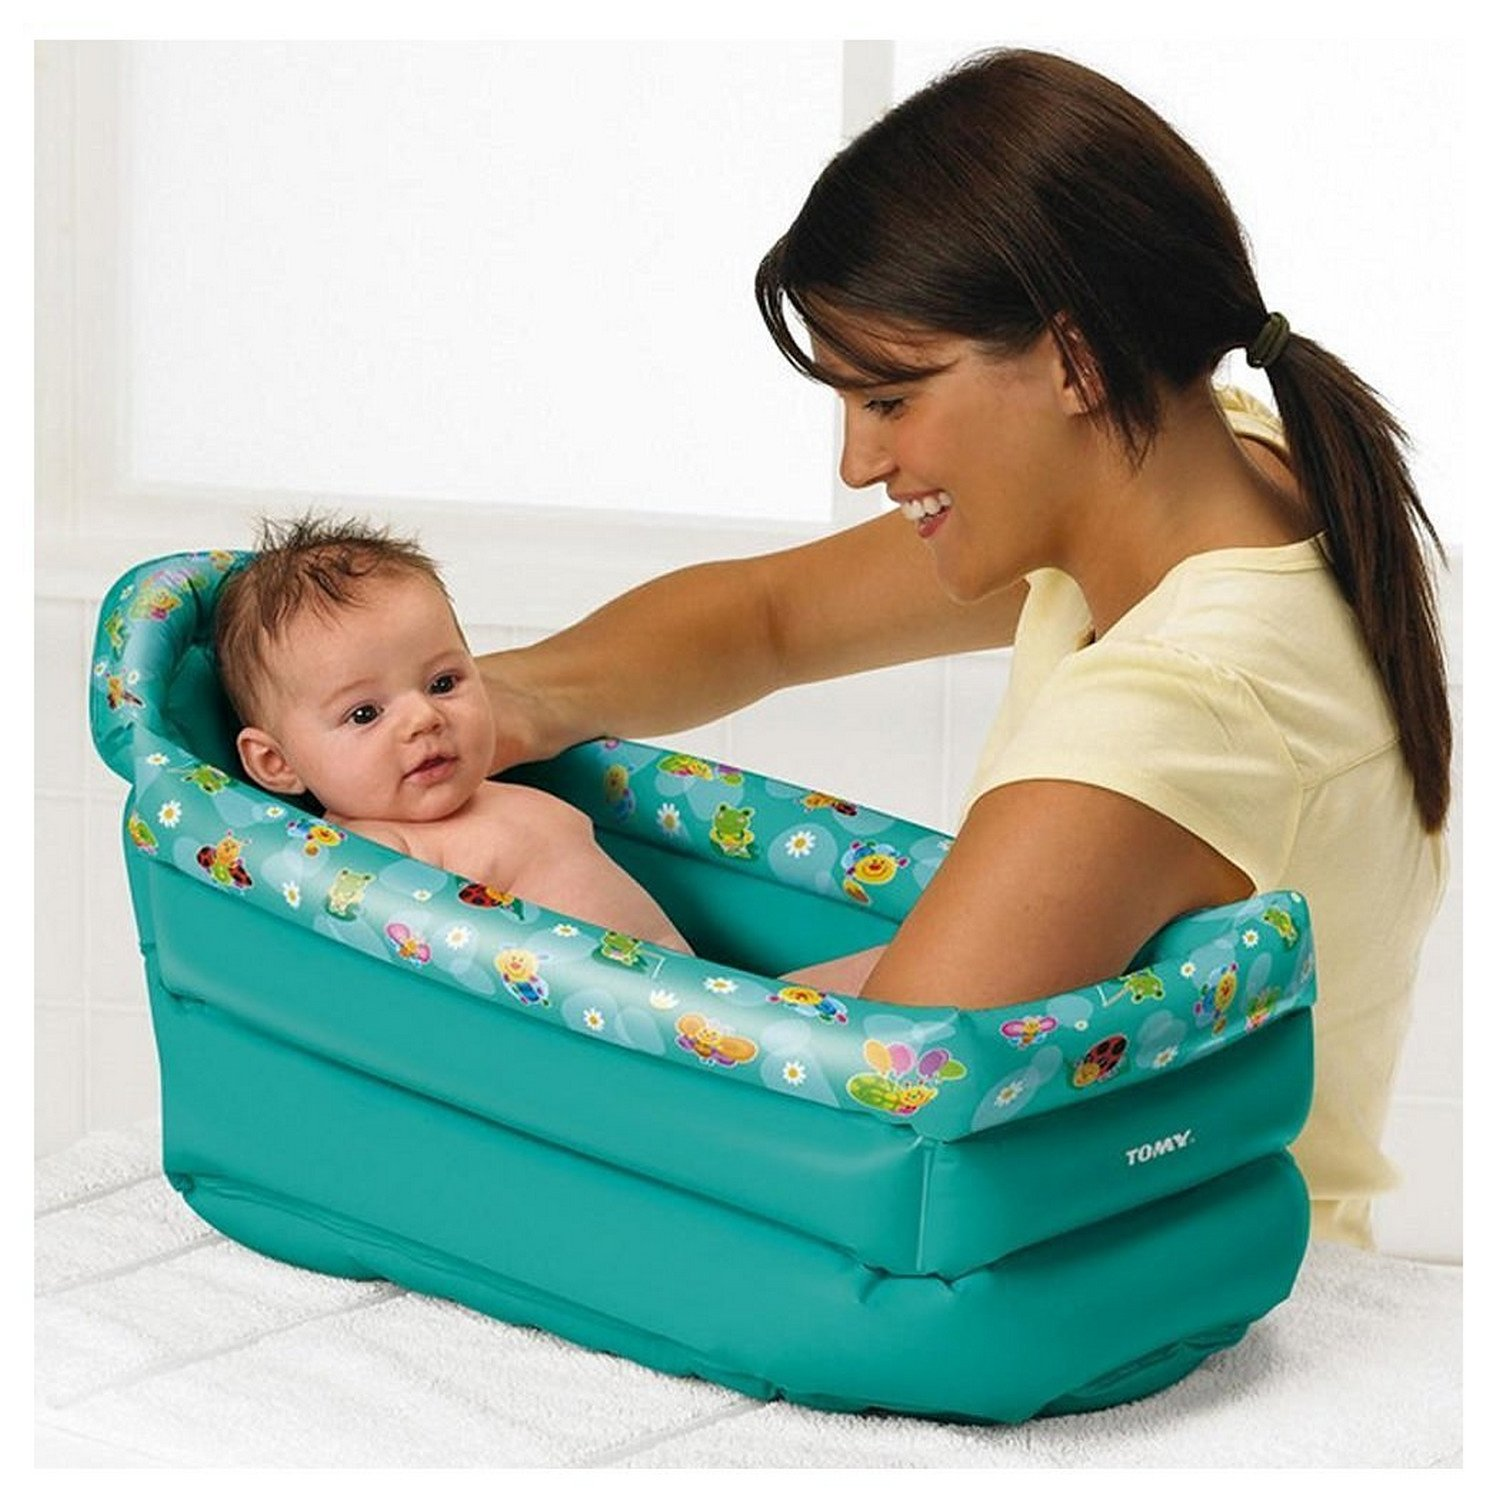 Tomy Baignoire Gonflable